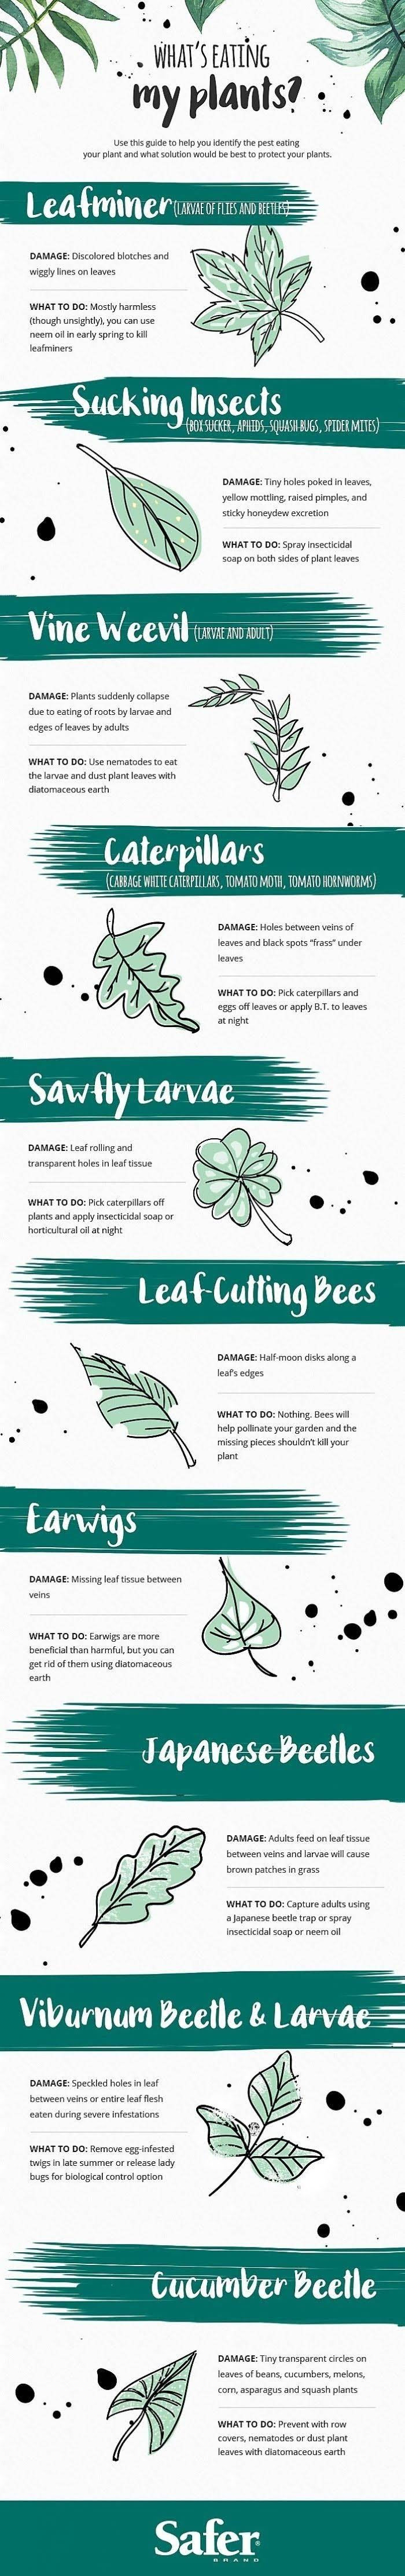 Garden Guide: What's Eating My Plants? #infographics